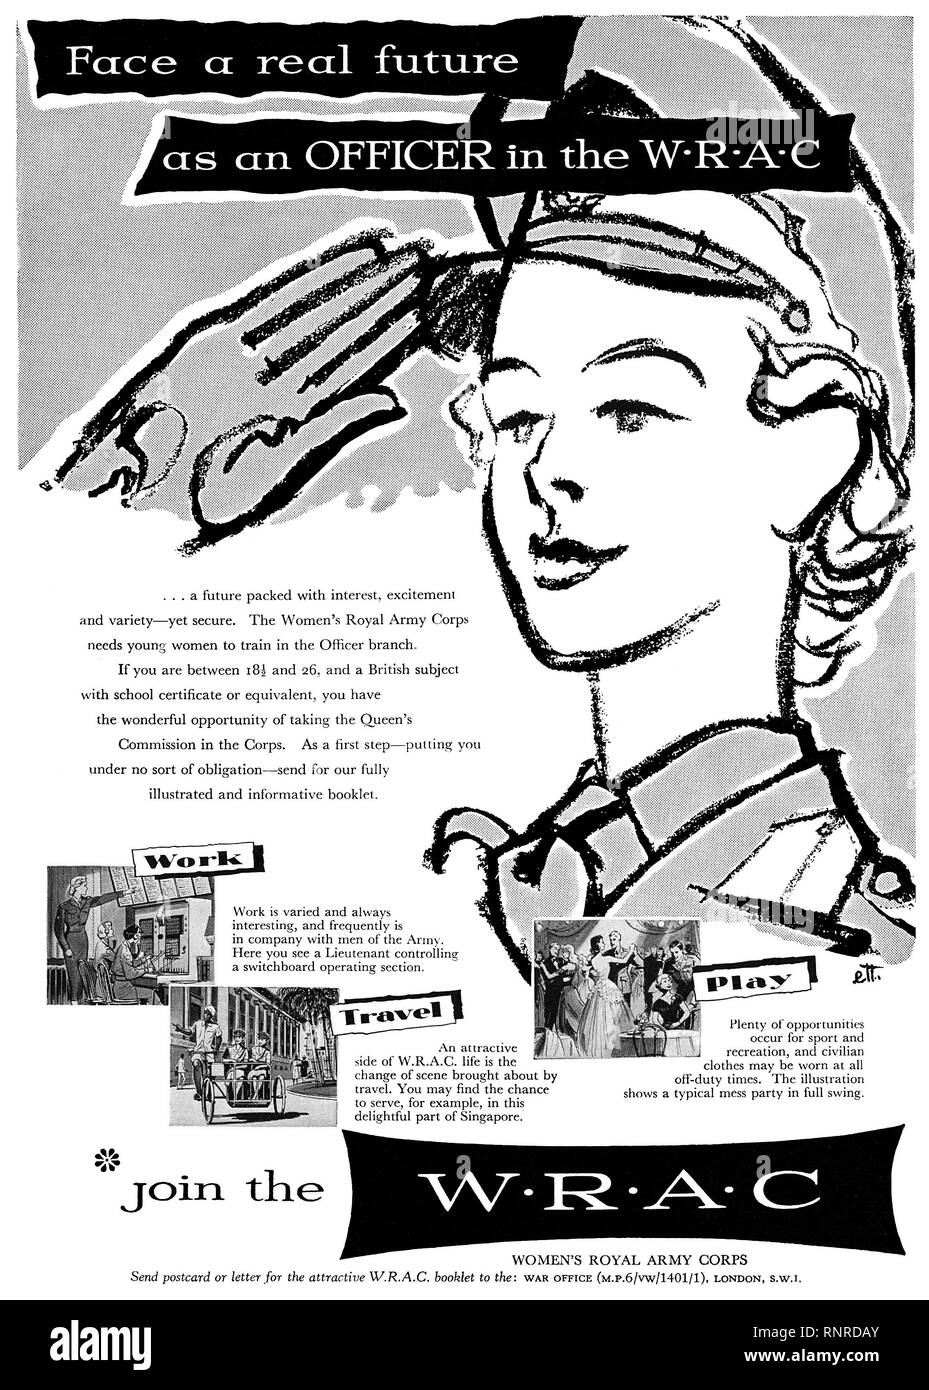 1956 British advertisement for the Women's Royal Army Corps. - Stock Image